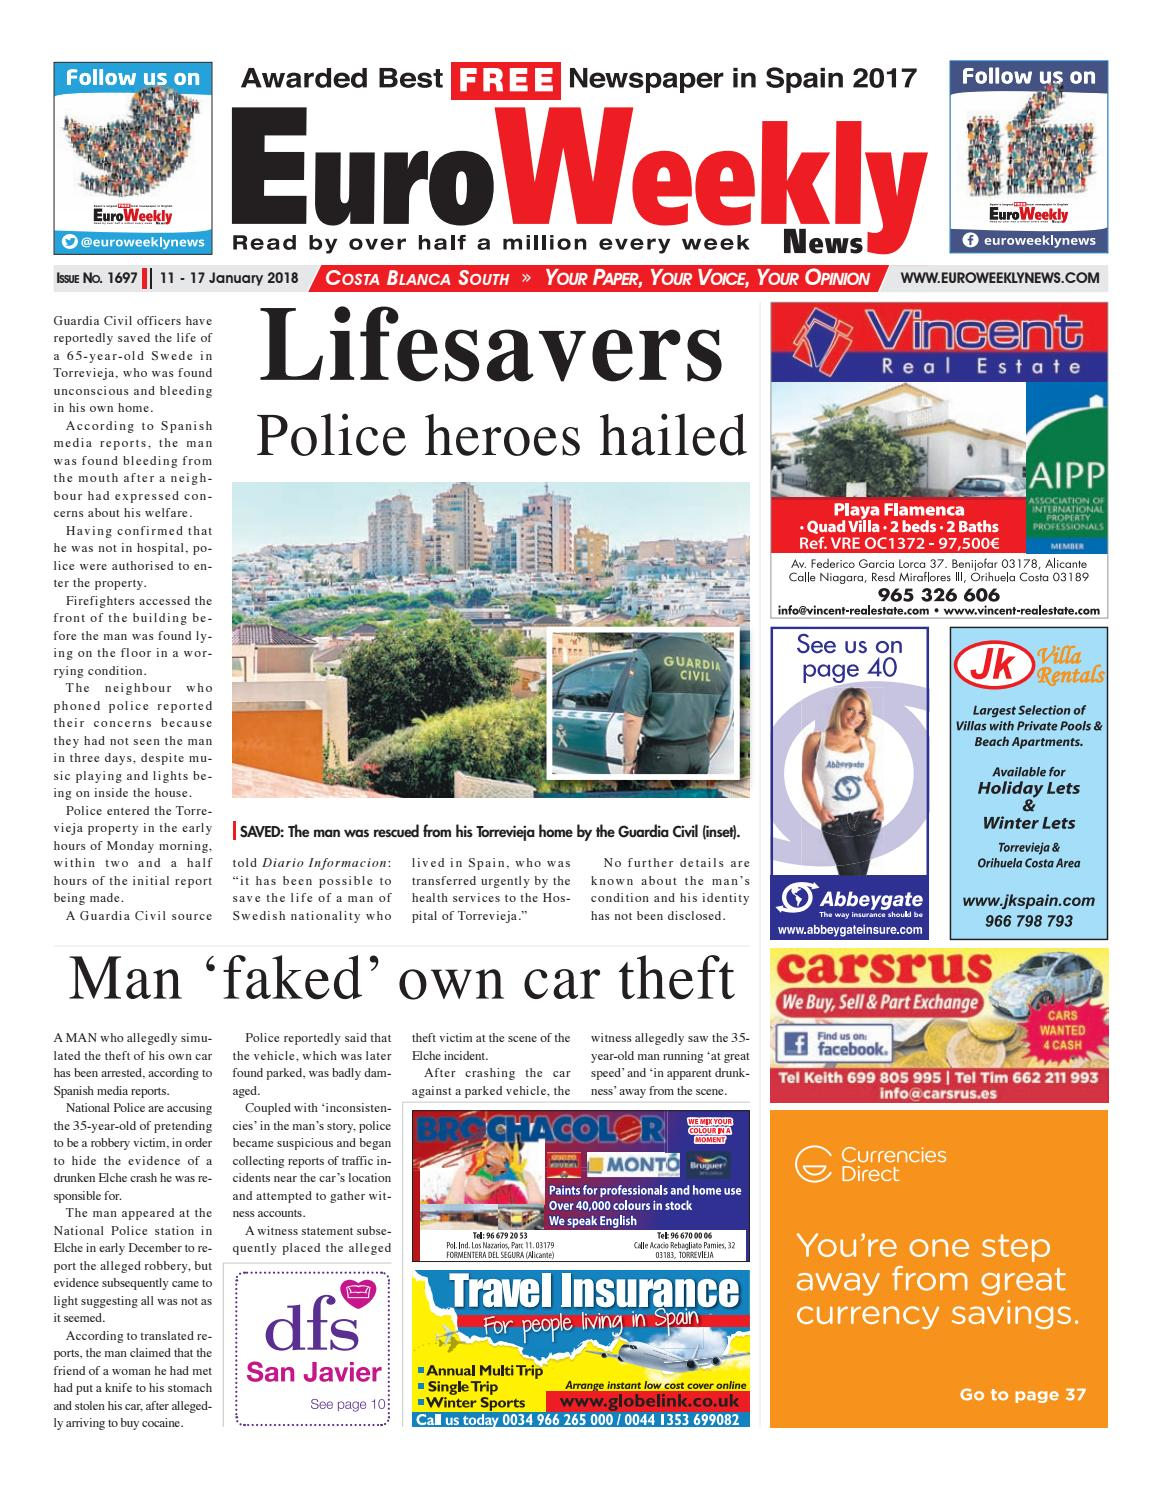 Muebles En Almoradi Euro Weekly News Costa Blanca South 11 17 Jan 2018 Issue 1697